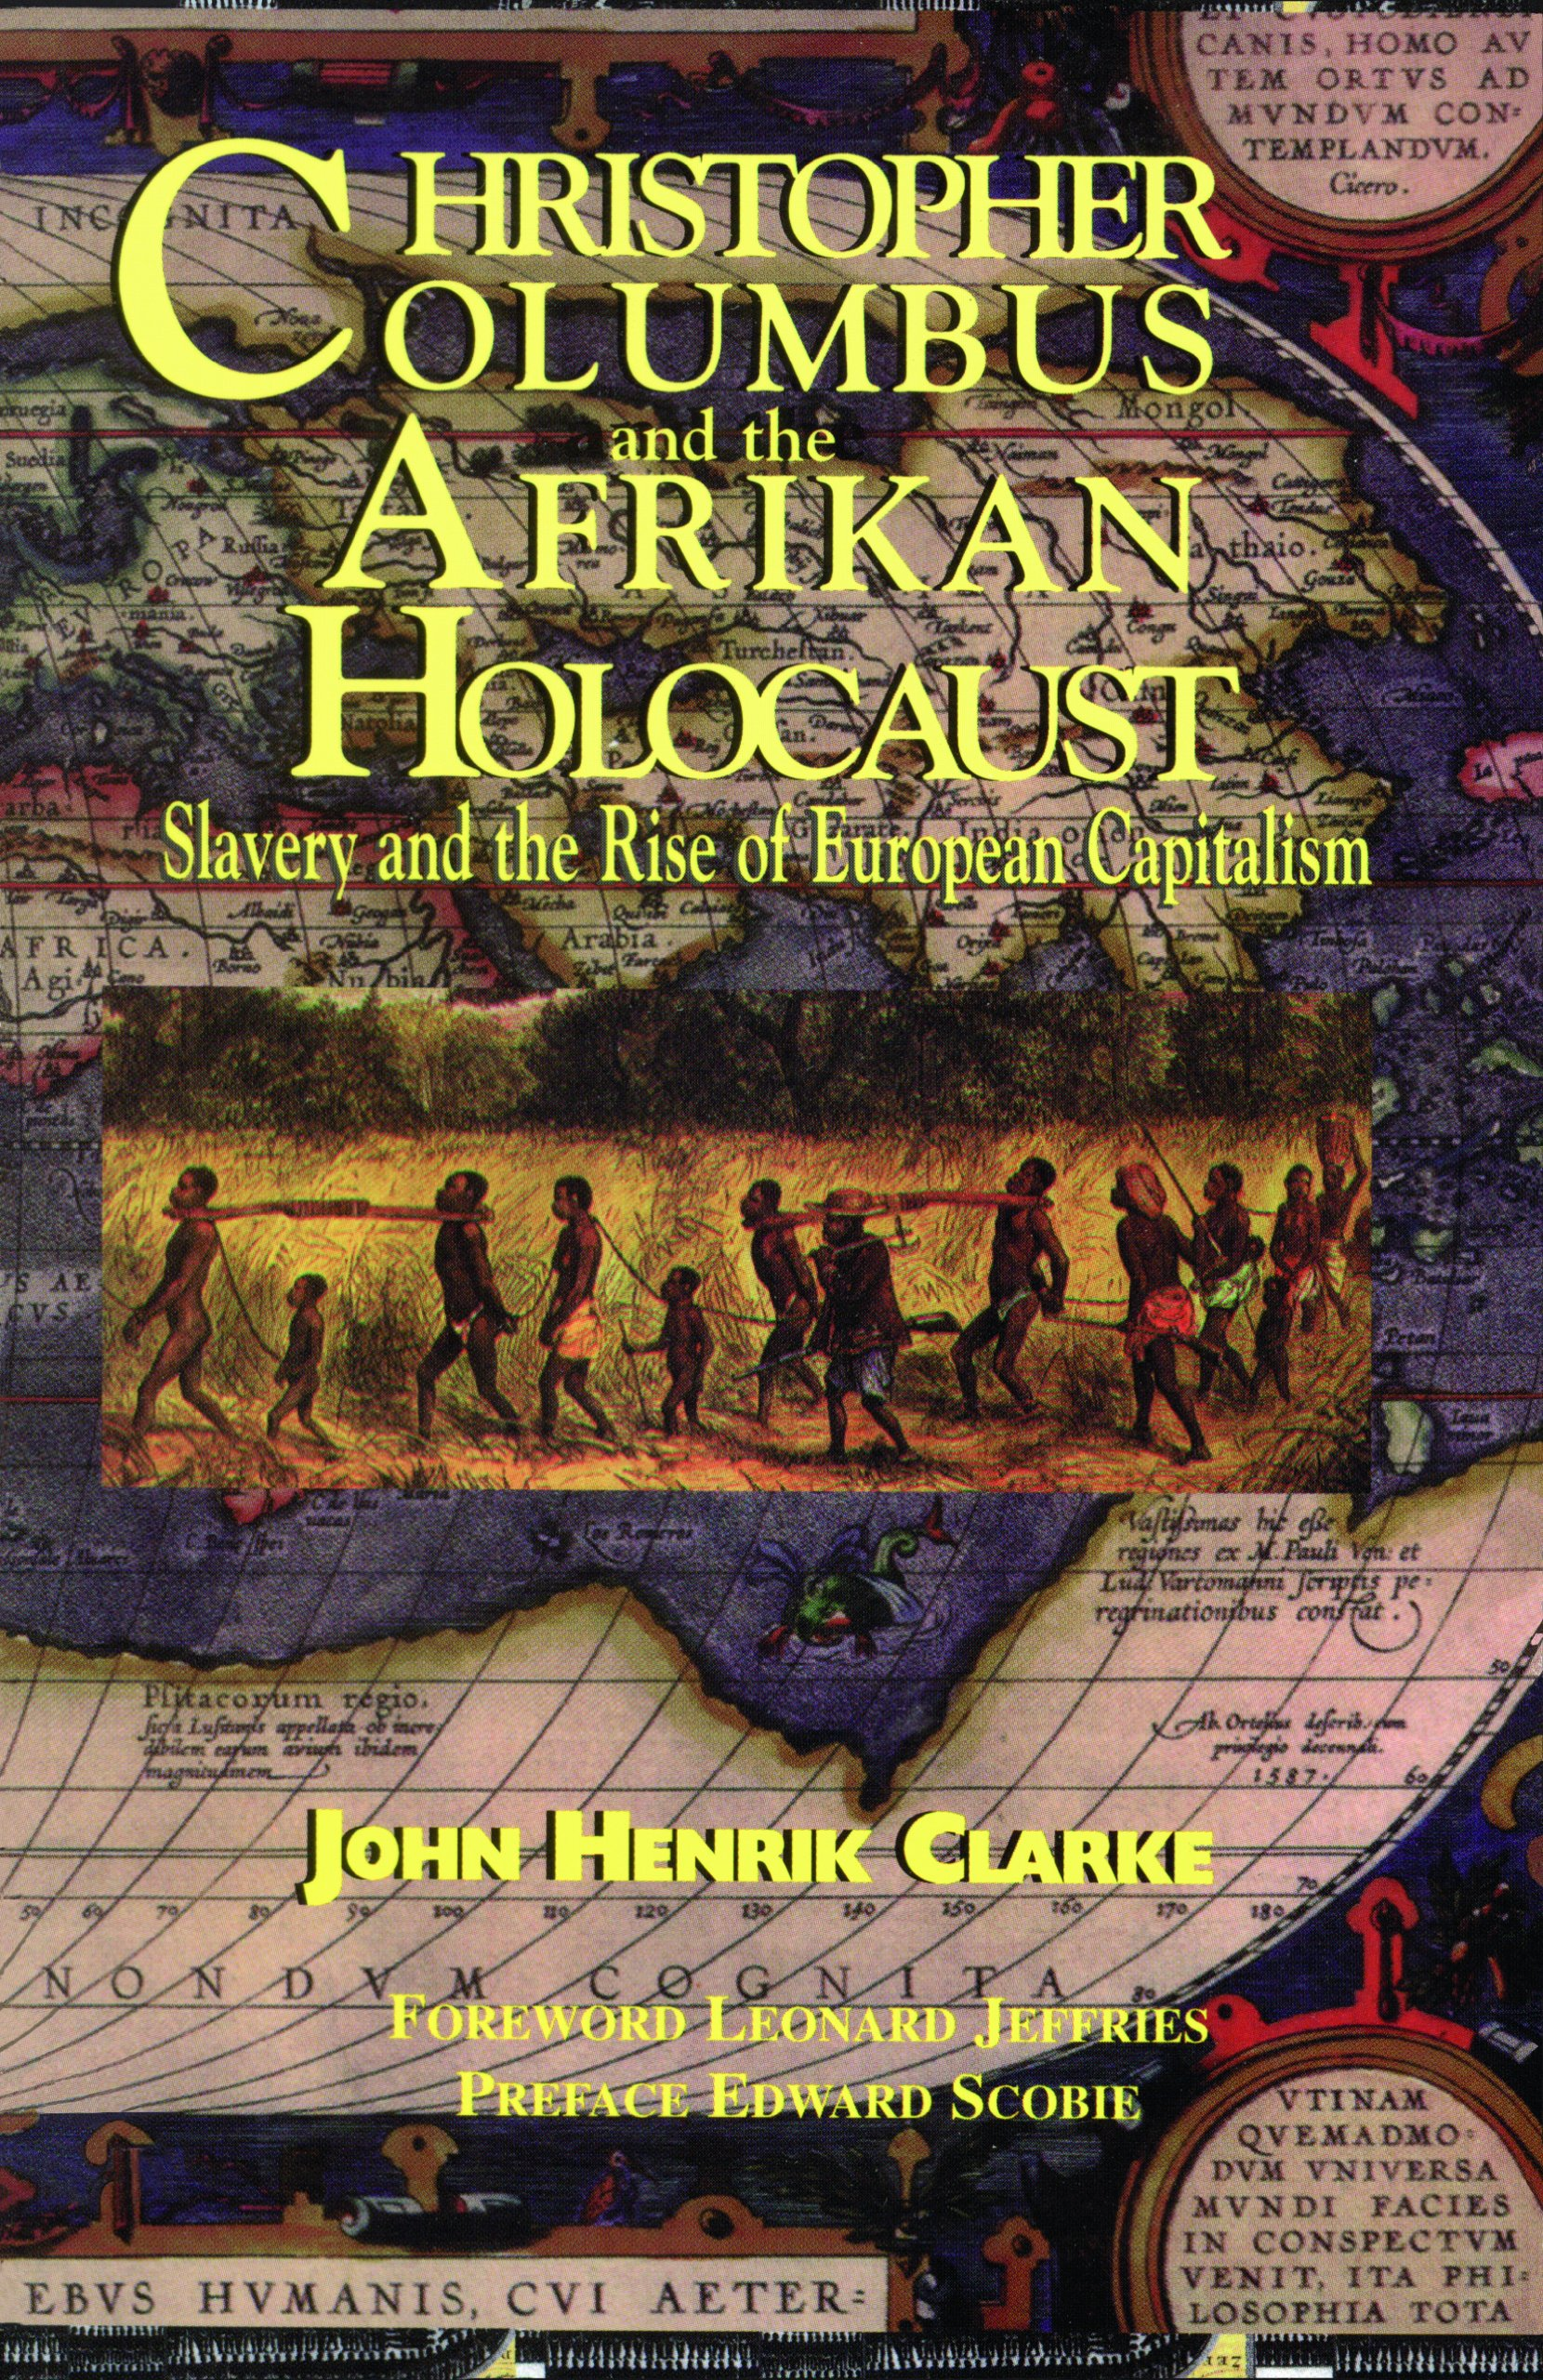 christopher columbus and the afrikan holocaust slavery and the